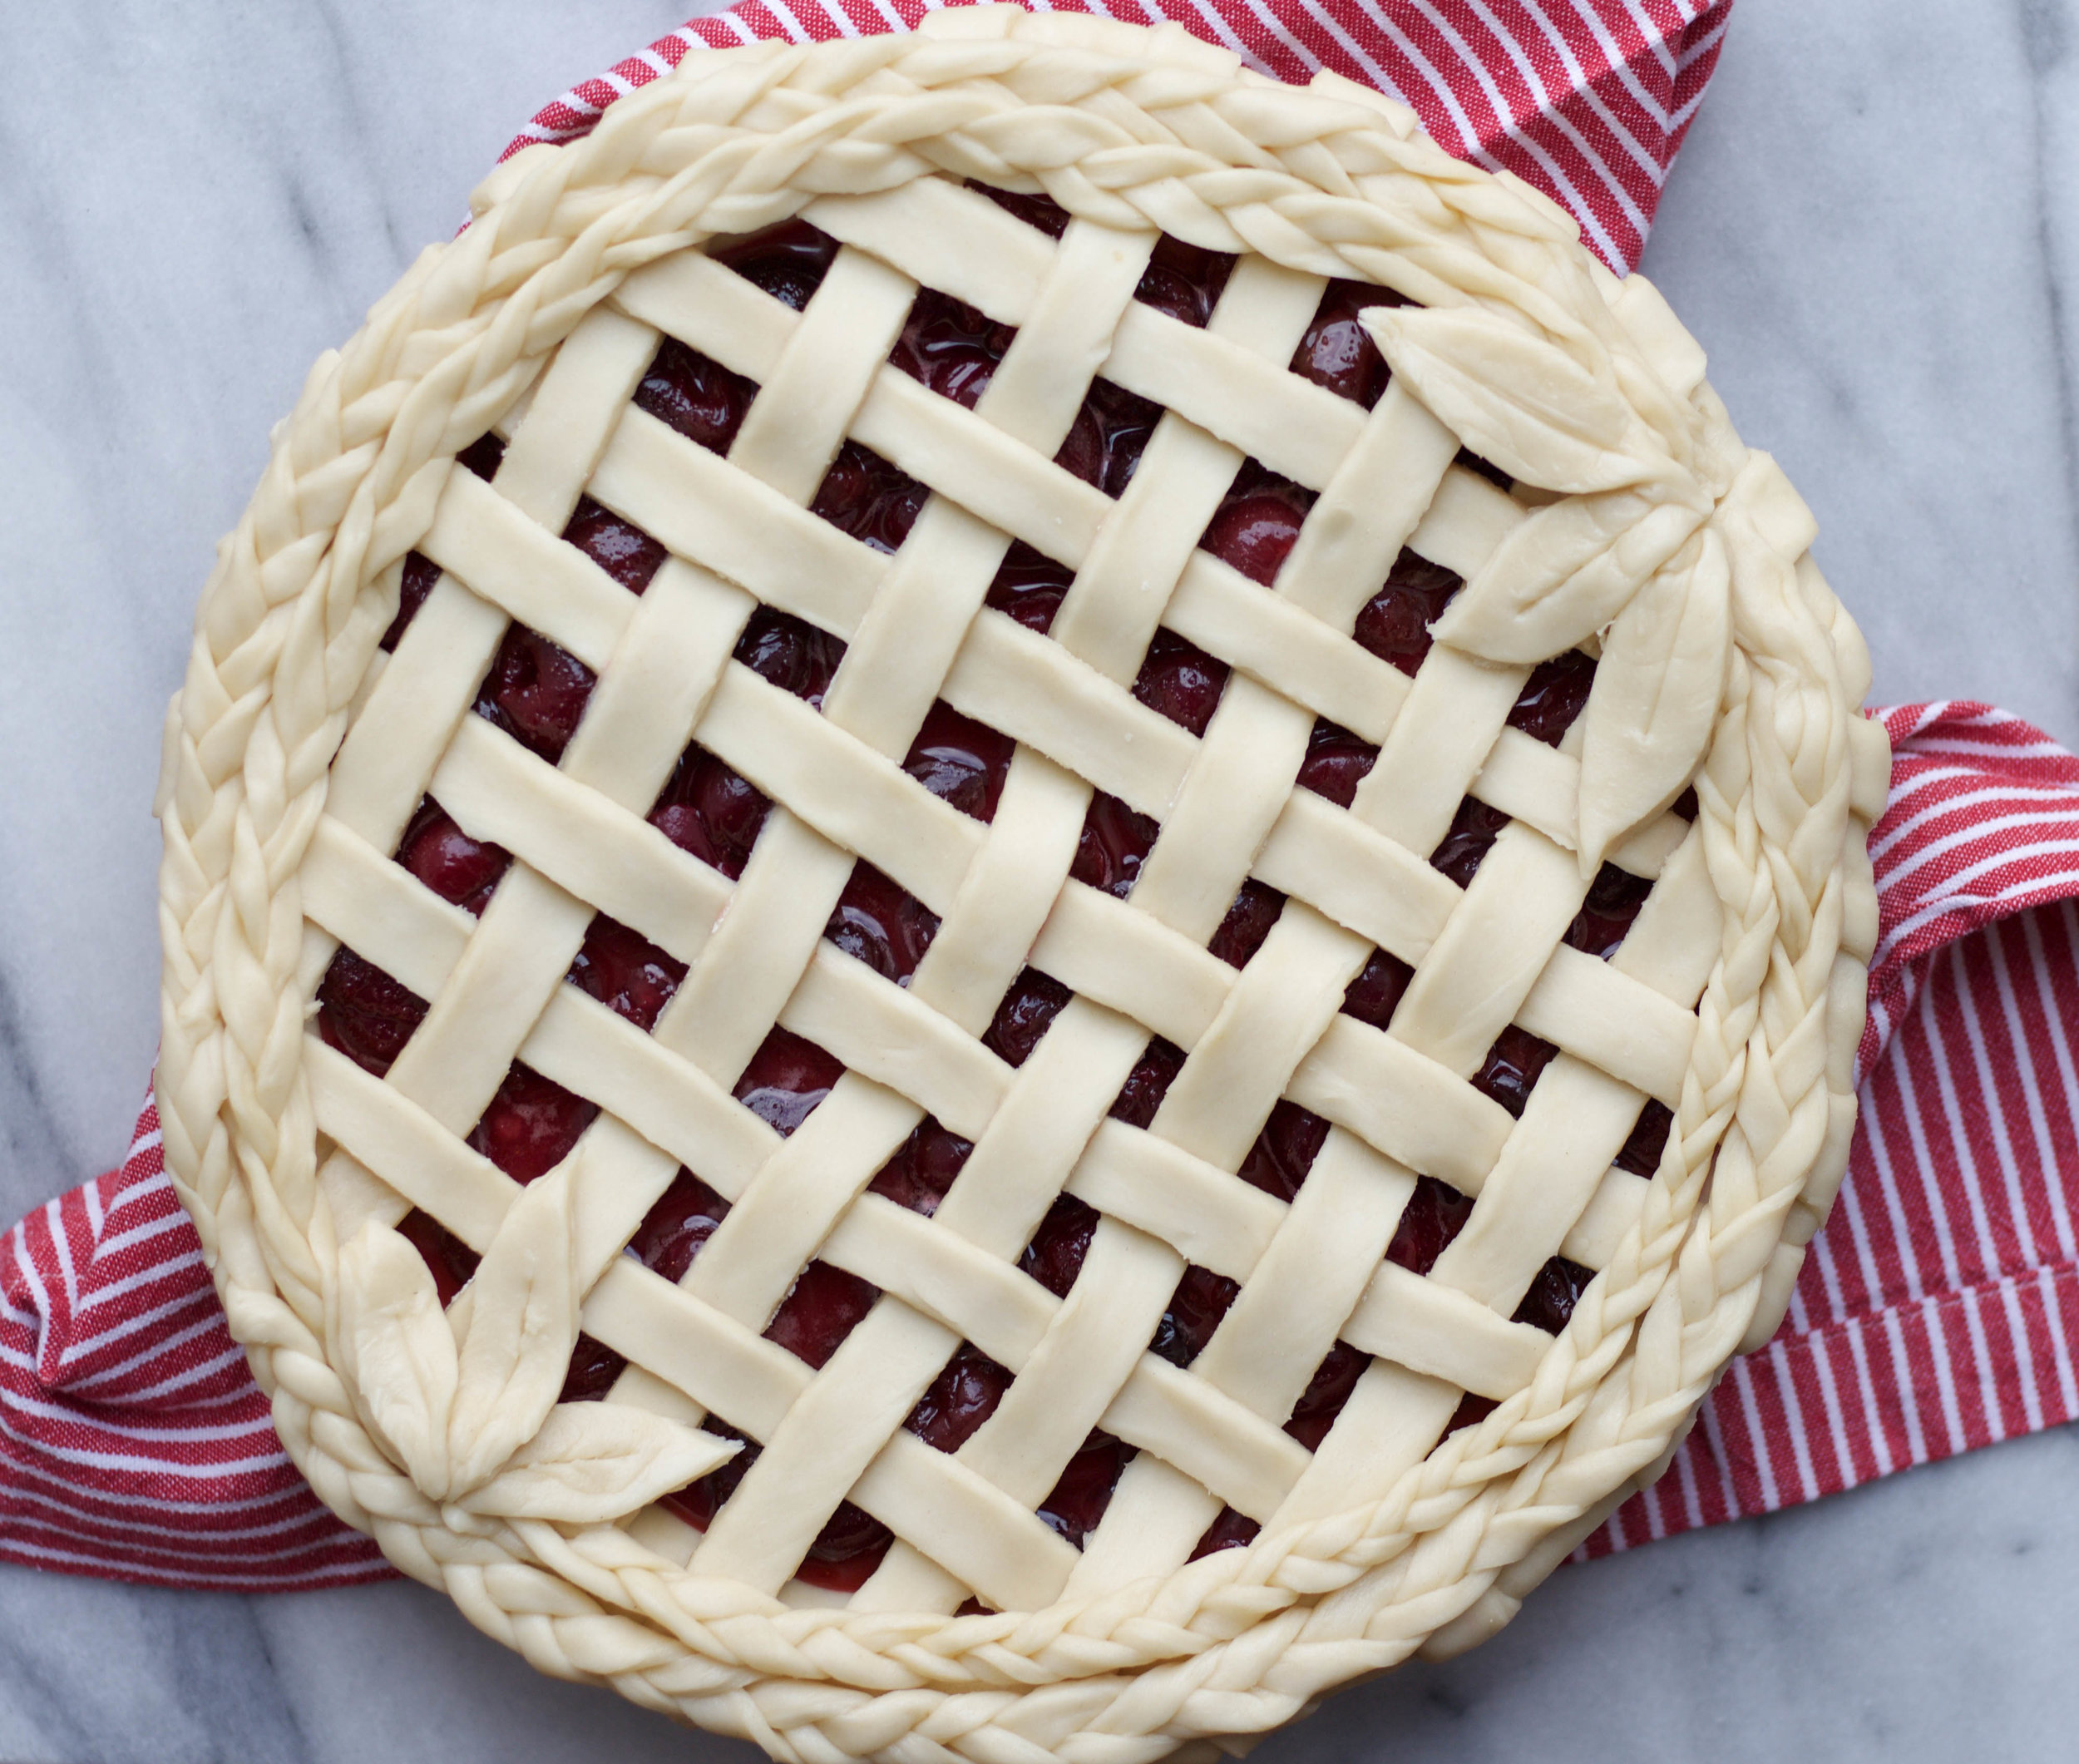 Cherry Pie with Braided Lattice Crust